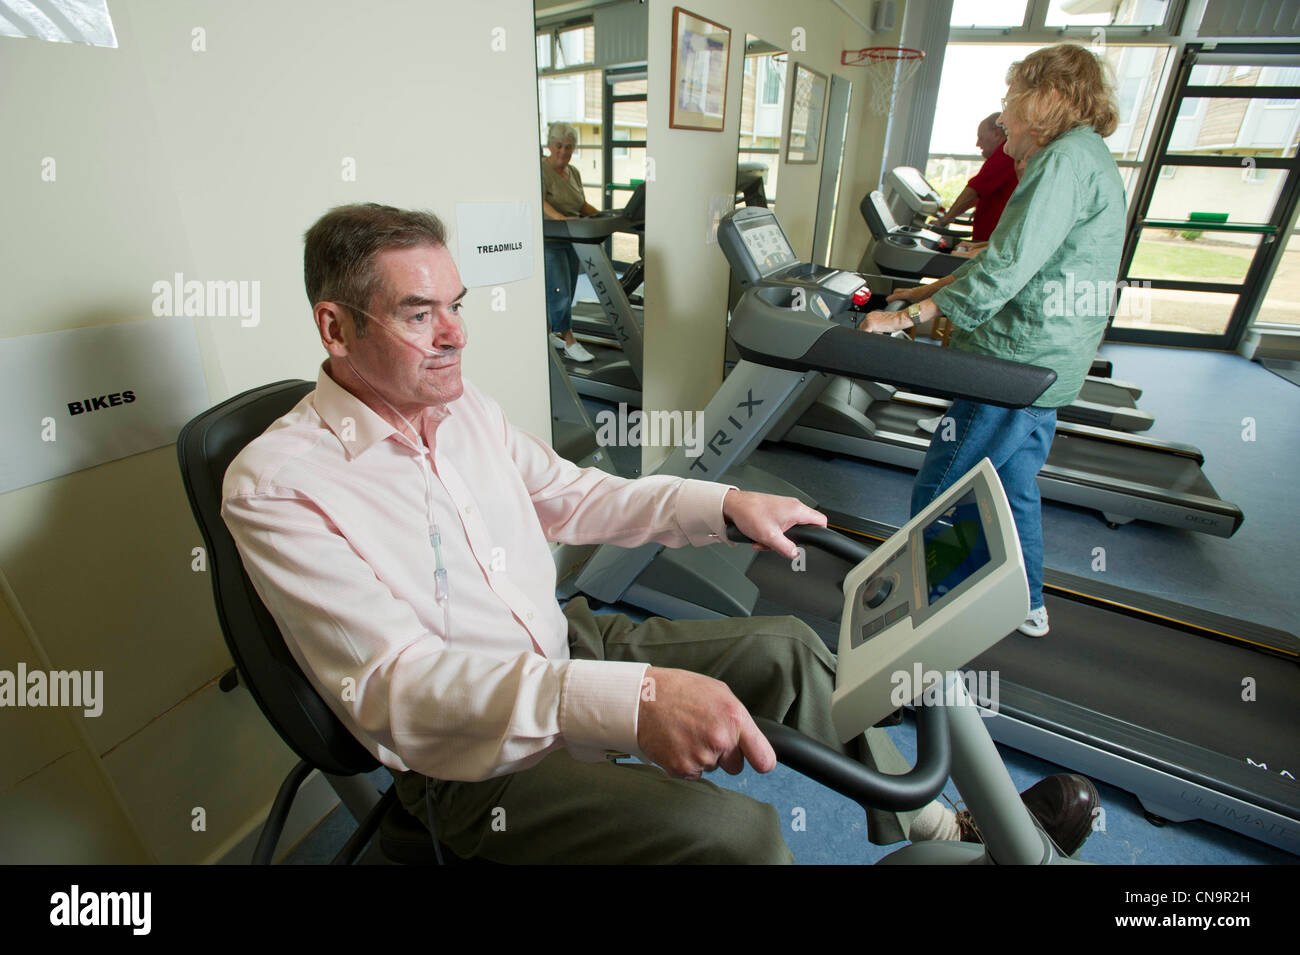 An ex-miner suffering from pneumoconiosis exercising at the Breathing Centre, Rotherham - Stock Image